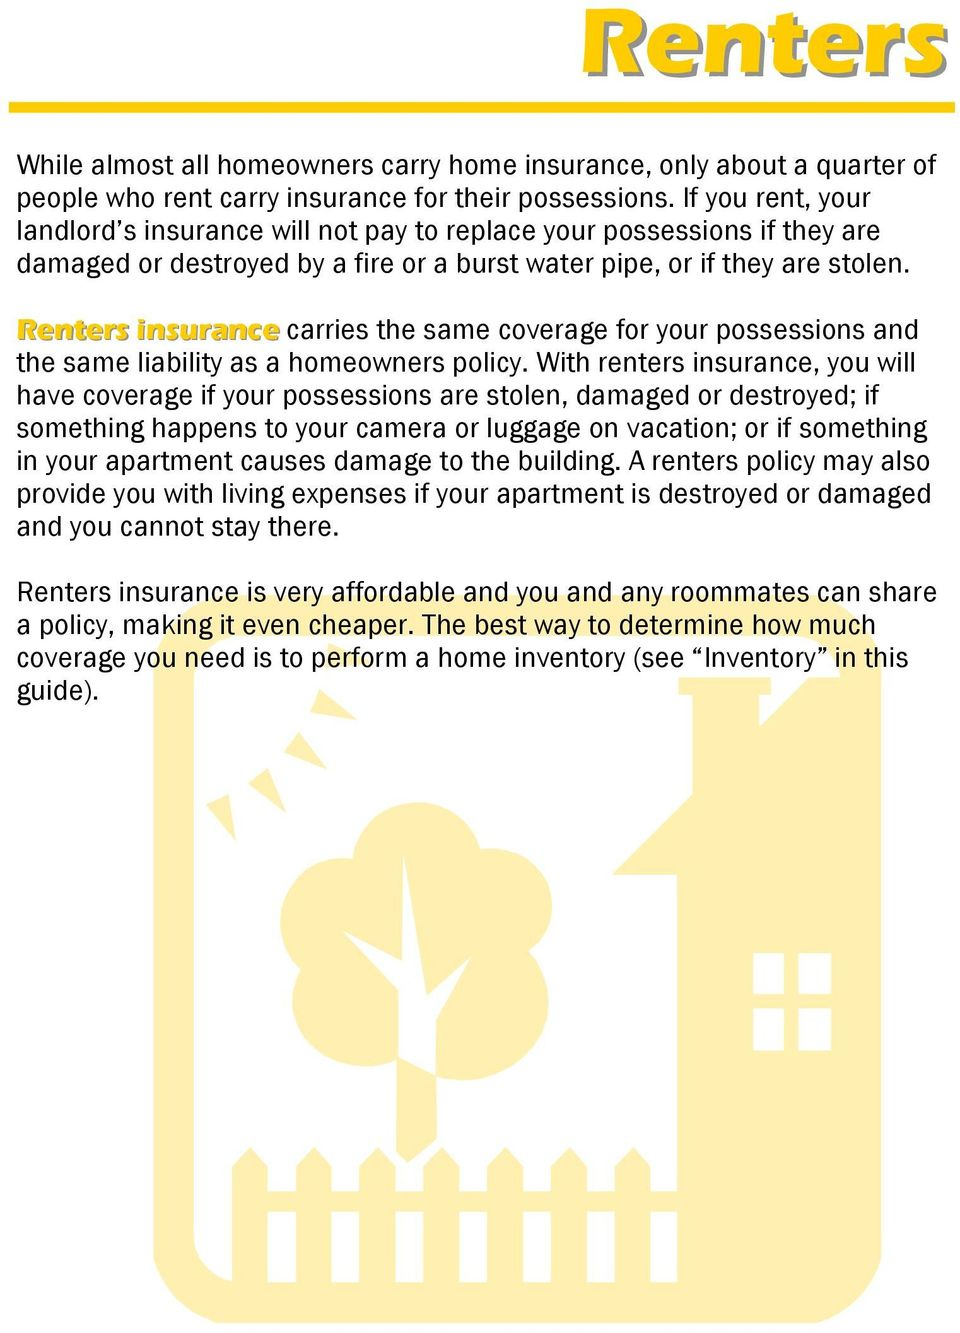 Renters insurance carries the same coverage for your possessions and the same liability as a homeowners policy.